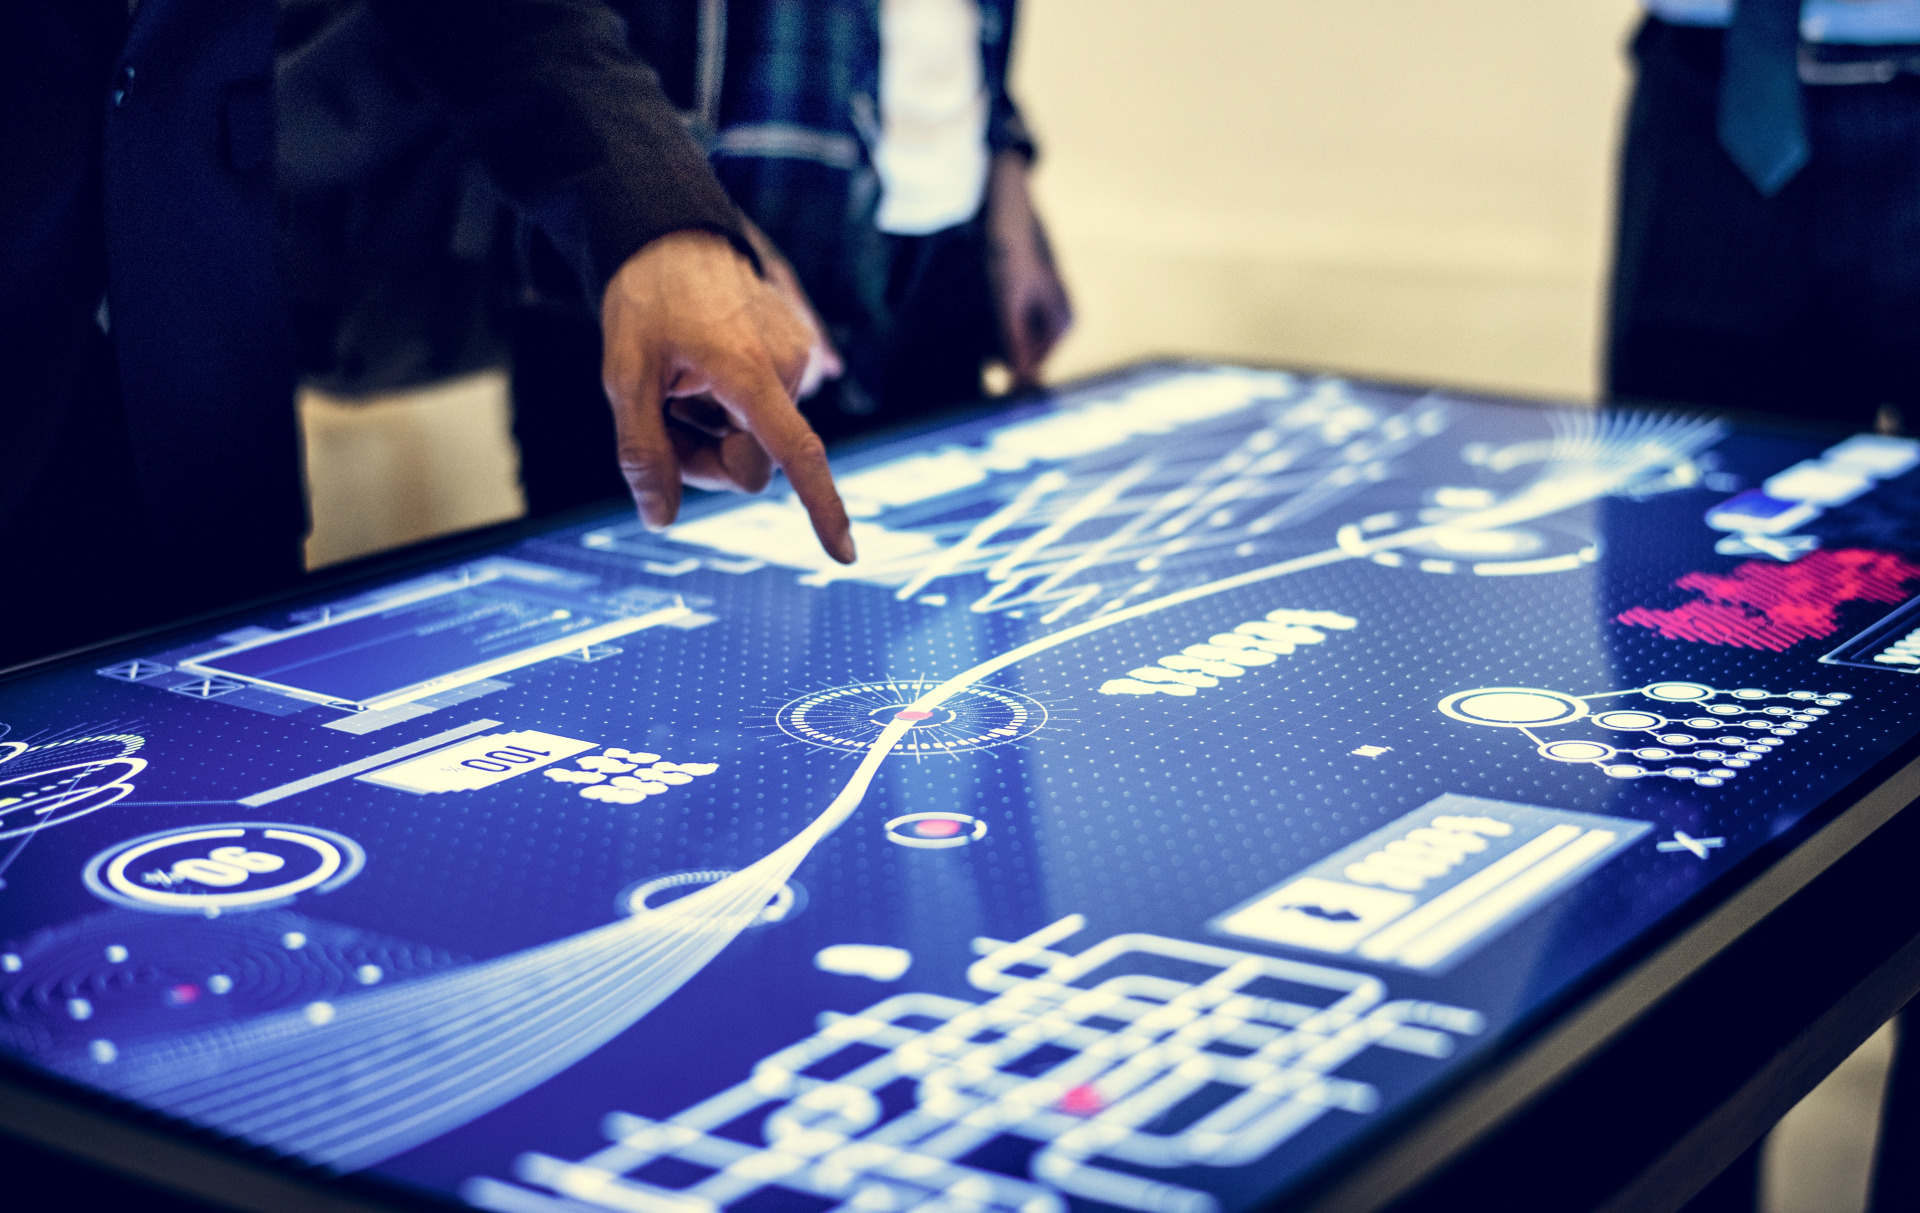 person interacting with touchscreen software